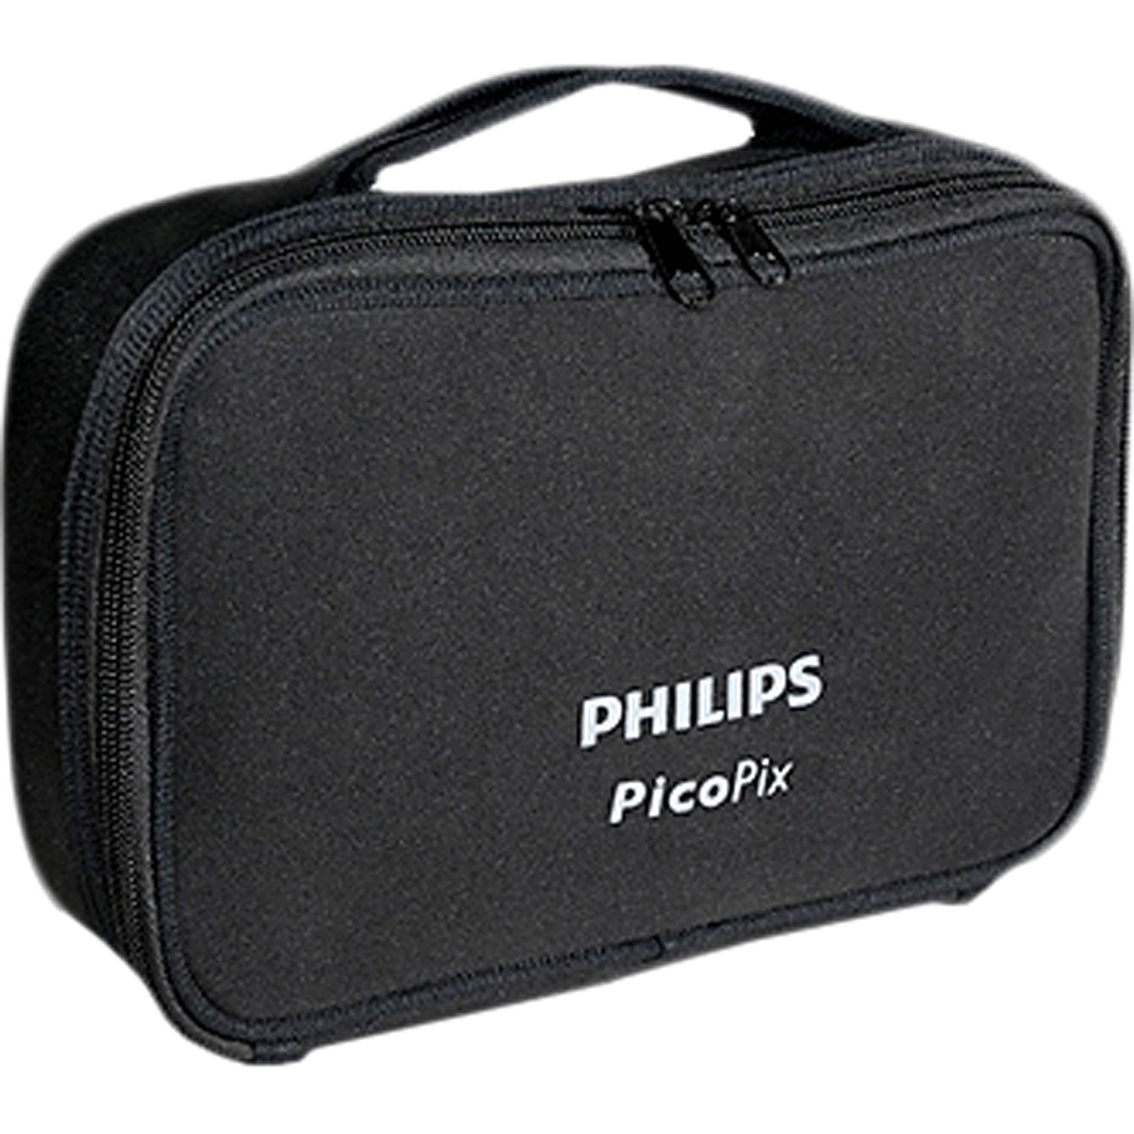 Philips big pouch pocket projector accessory storage for Pocket projector case